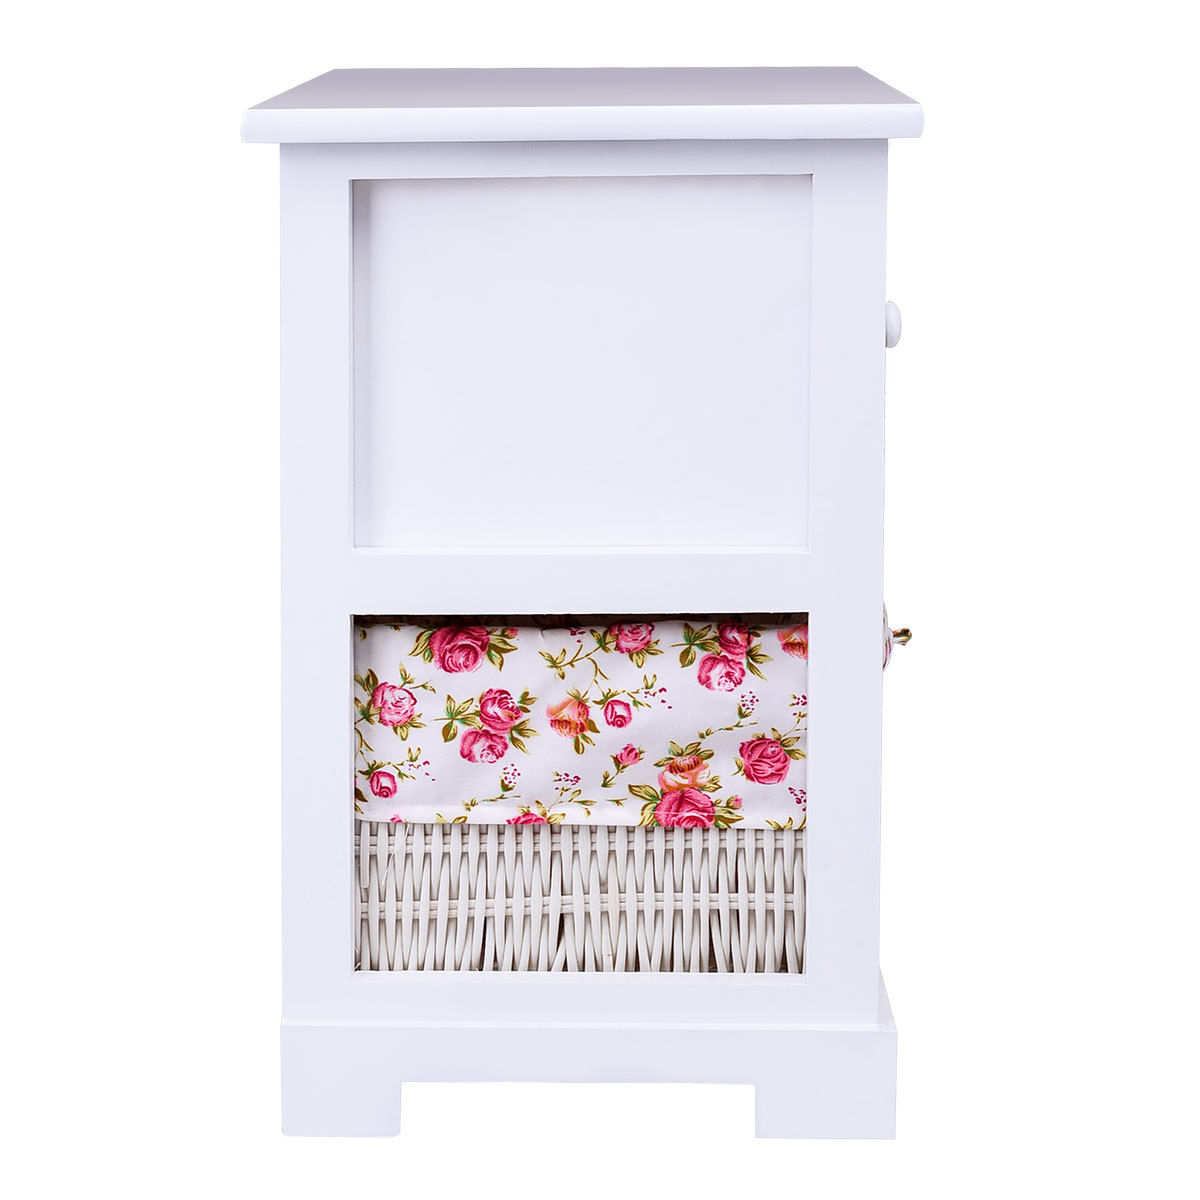 Gymax 2PCS 2 Tiers Wood Nightstand1 Drawer Bedside End Table Organizer W/Basket White - image 1 of 8